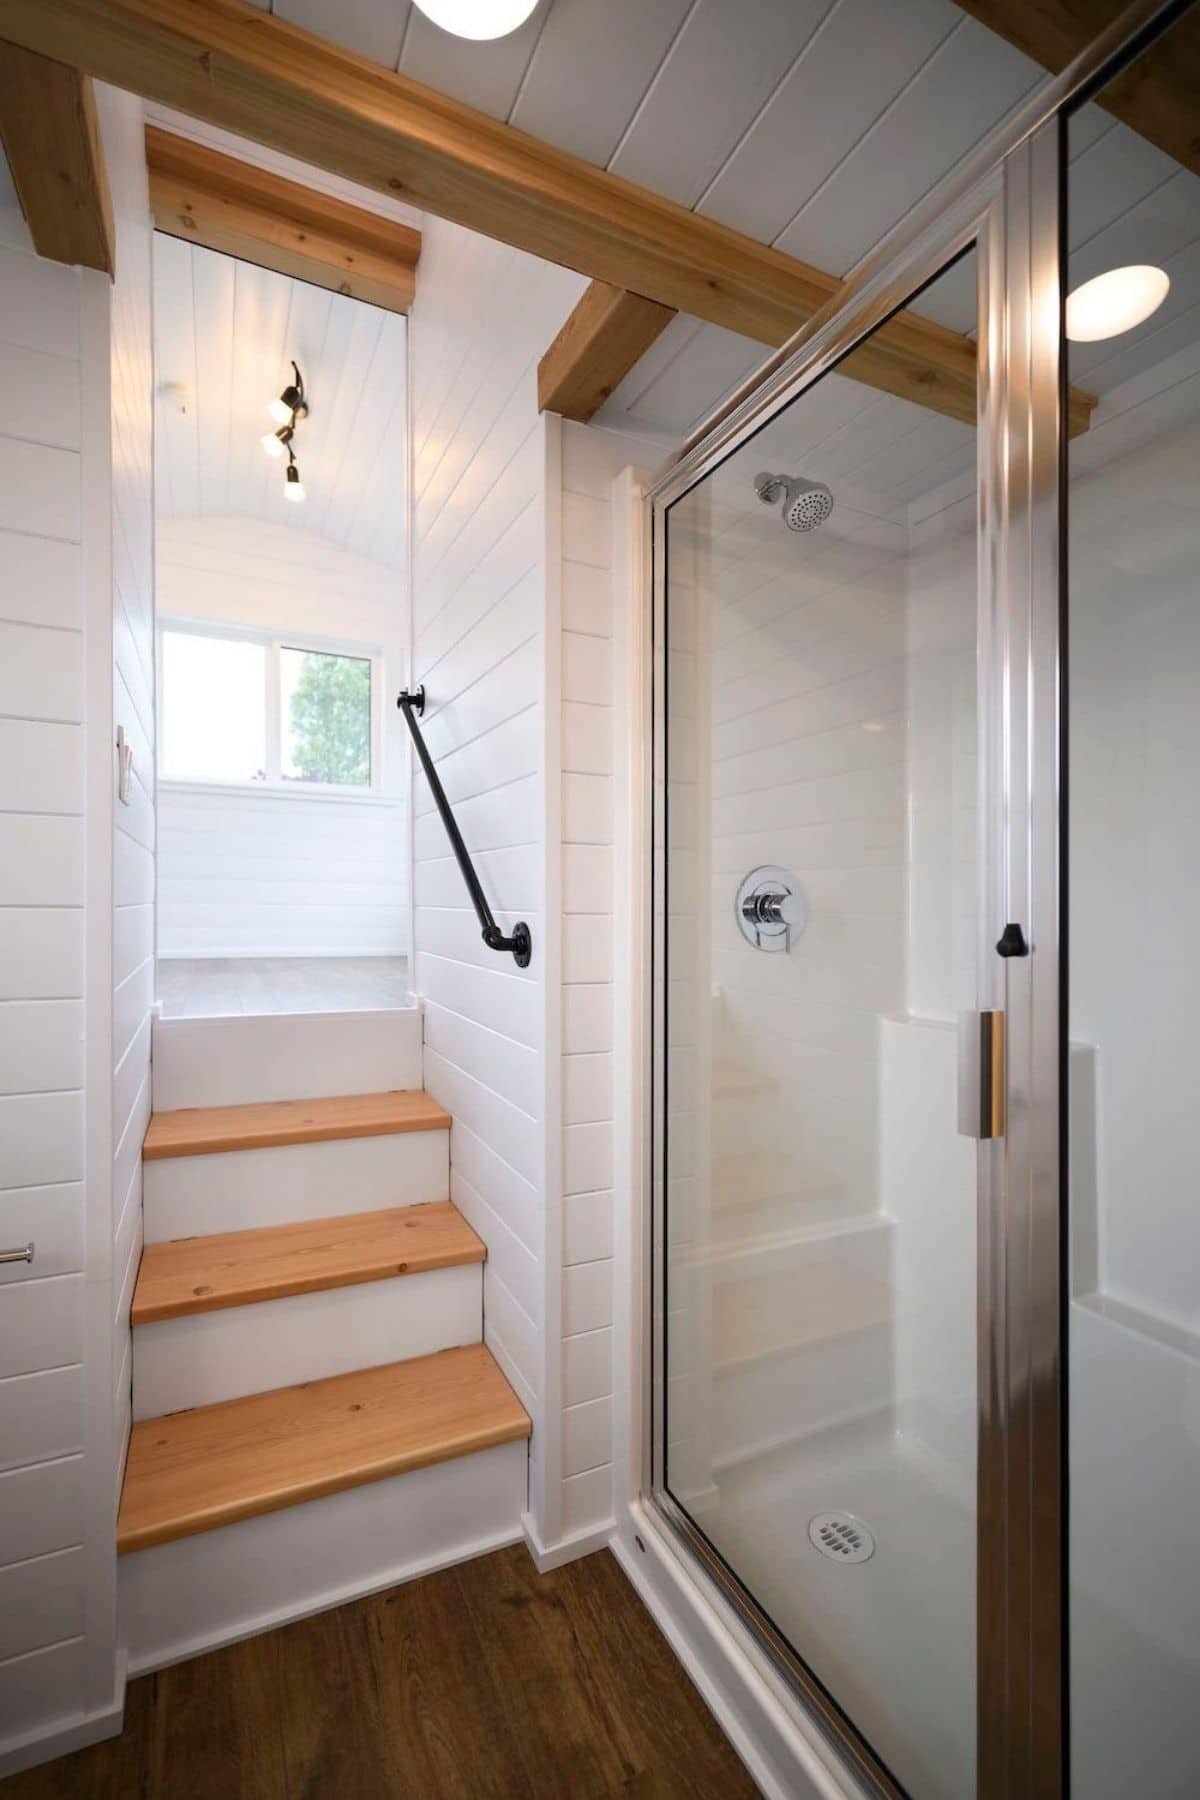 Stairs up to loft next to glass door of shower